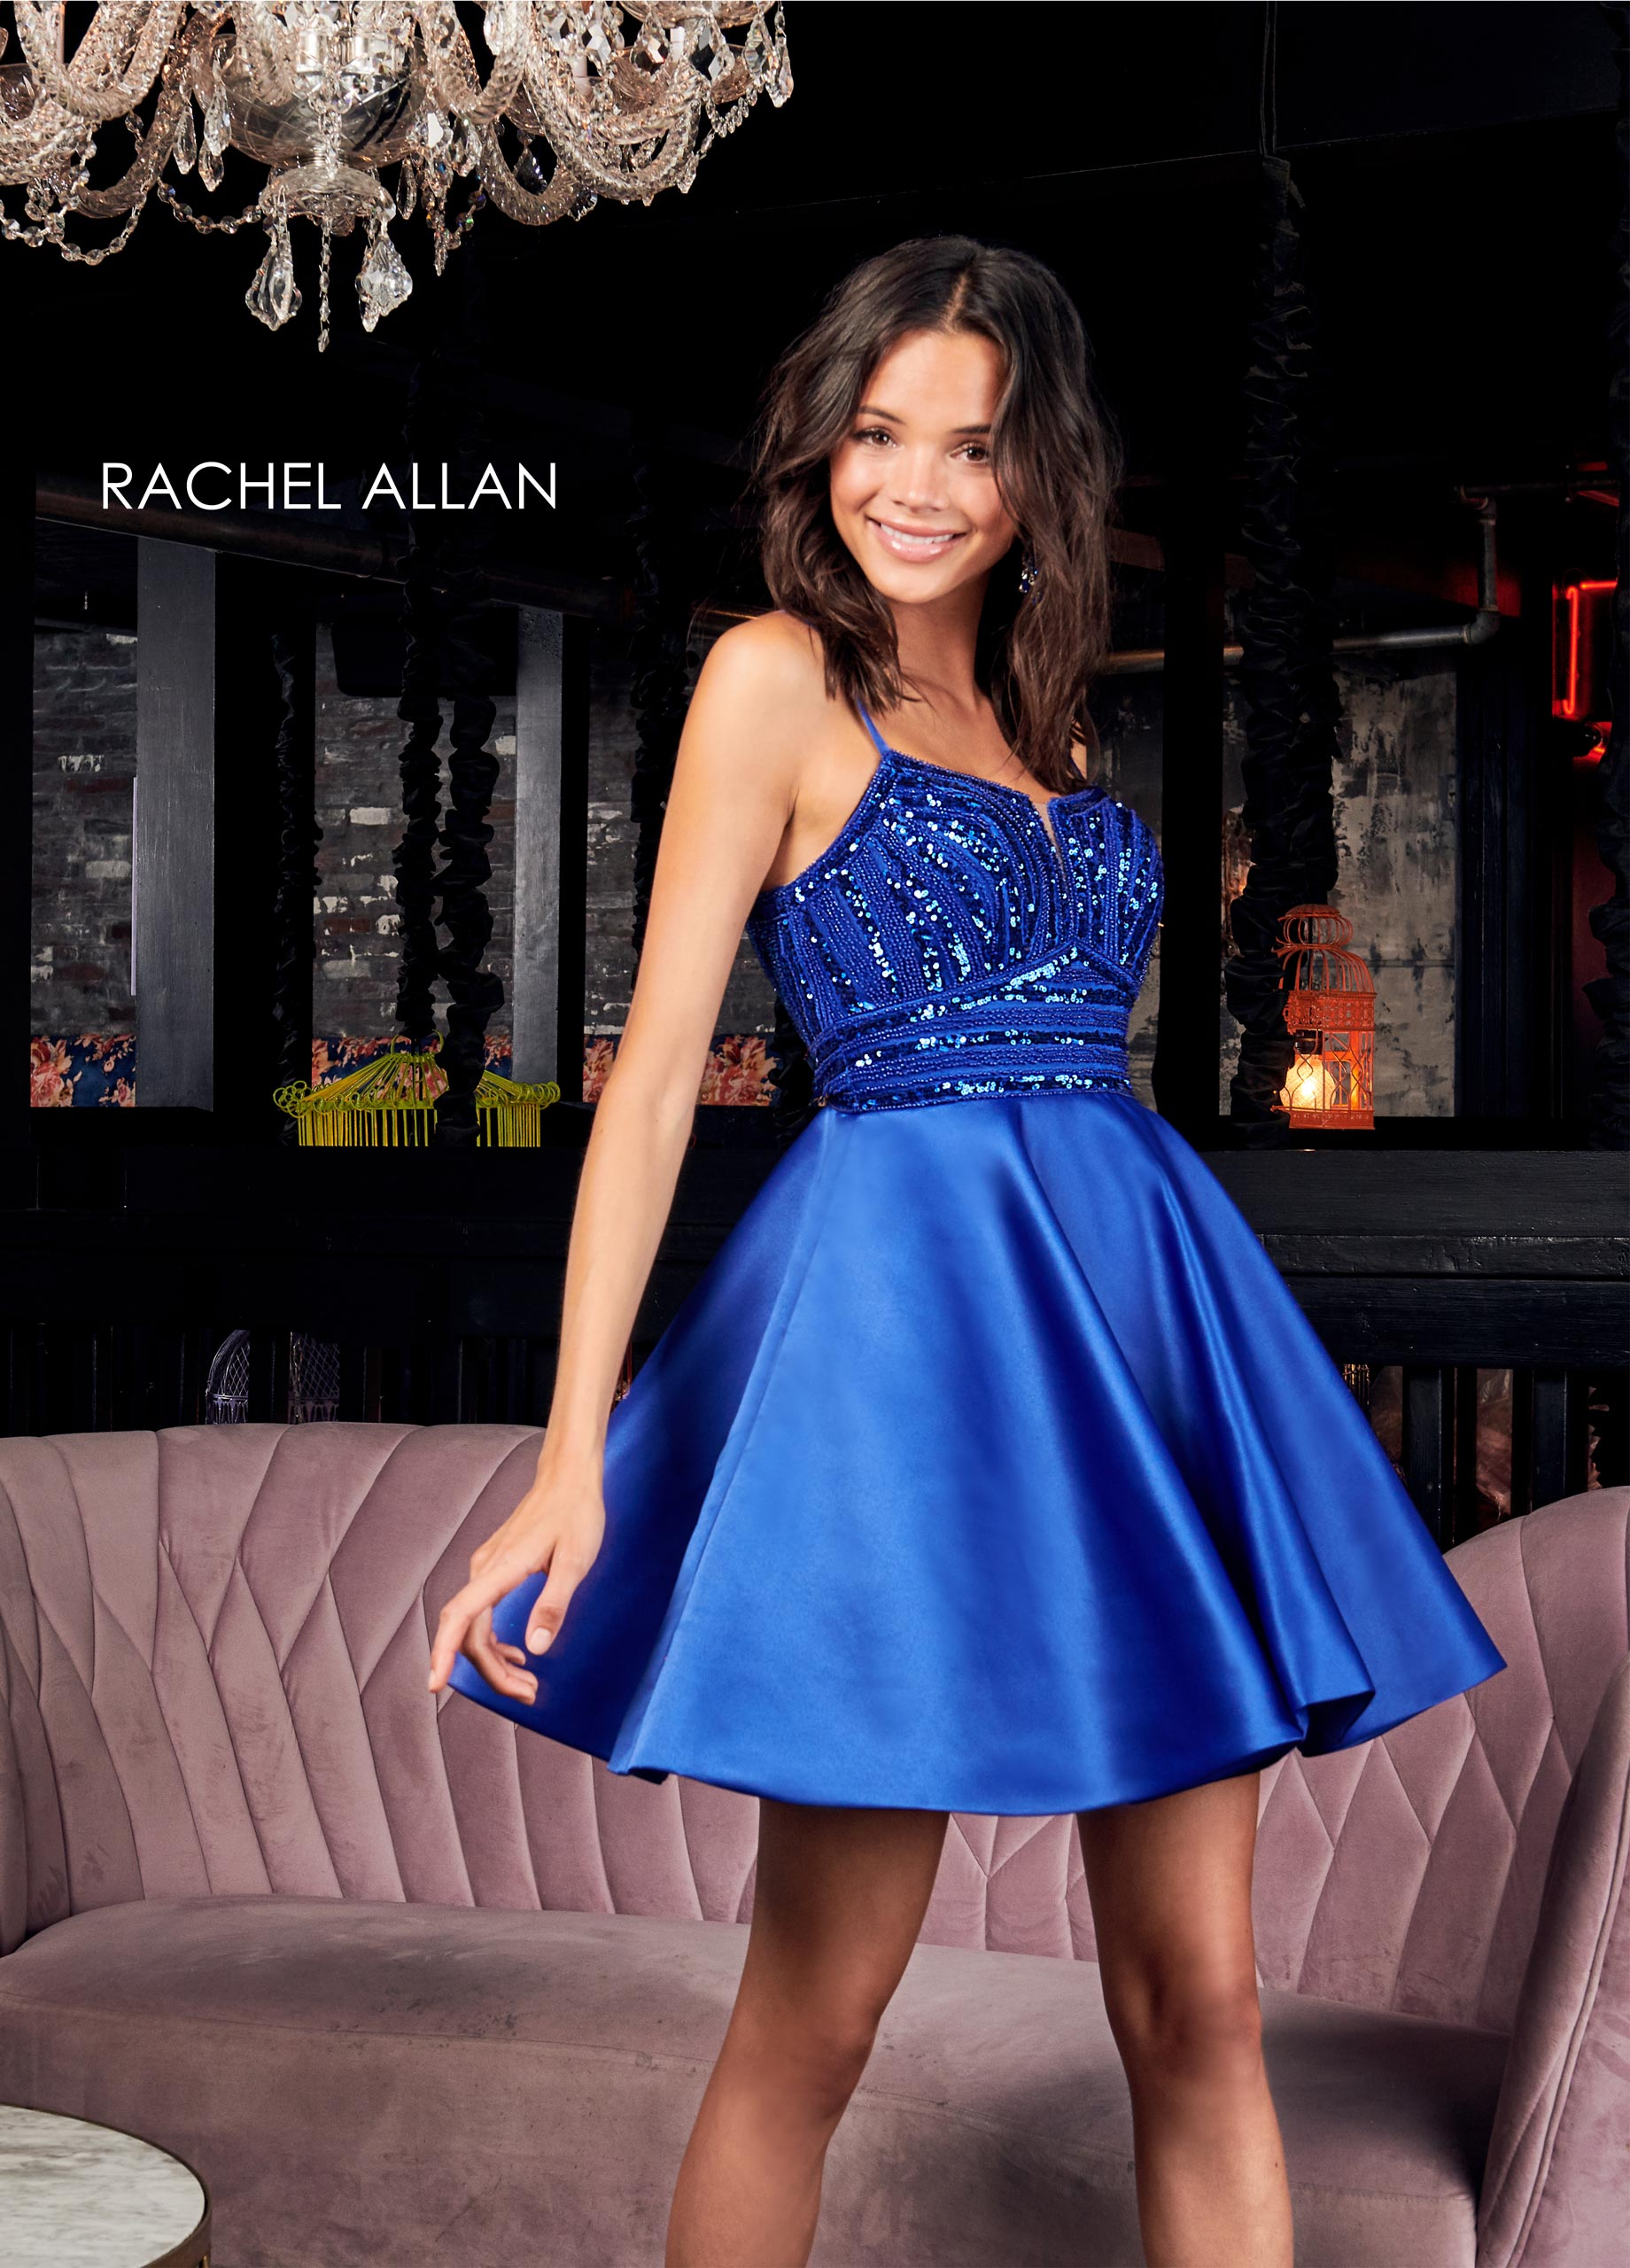 Scoop Neck A-Line Homecoming Dresses in Royal Color